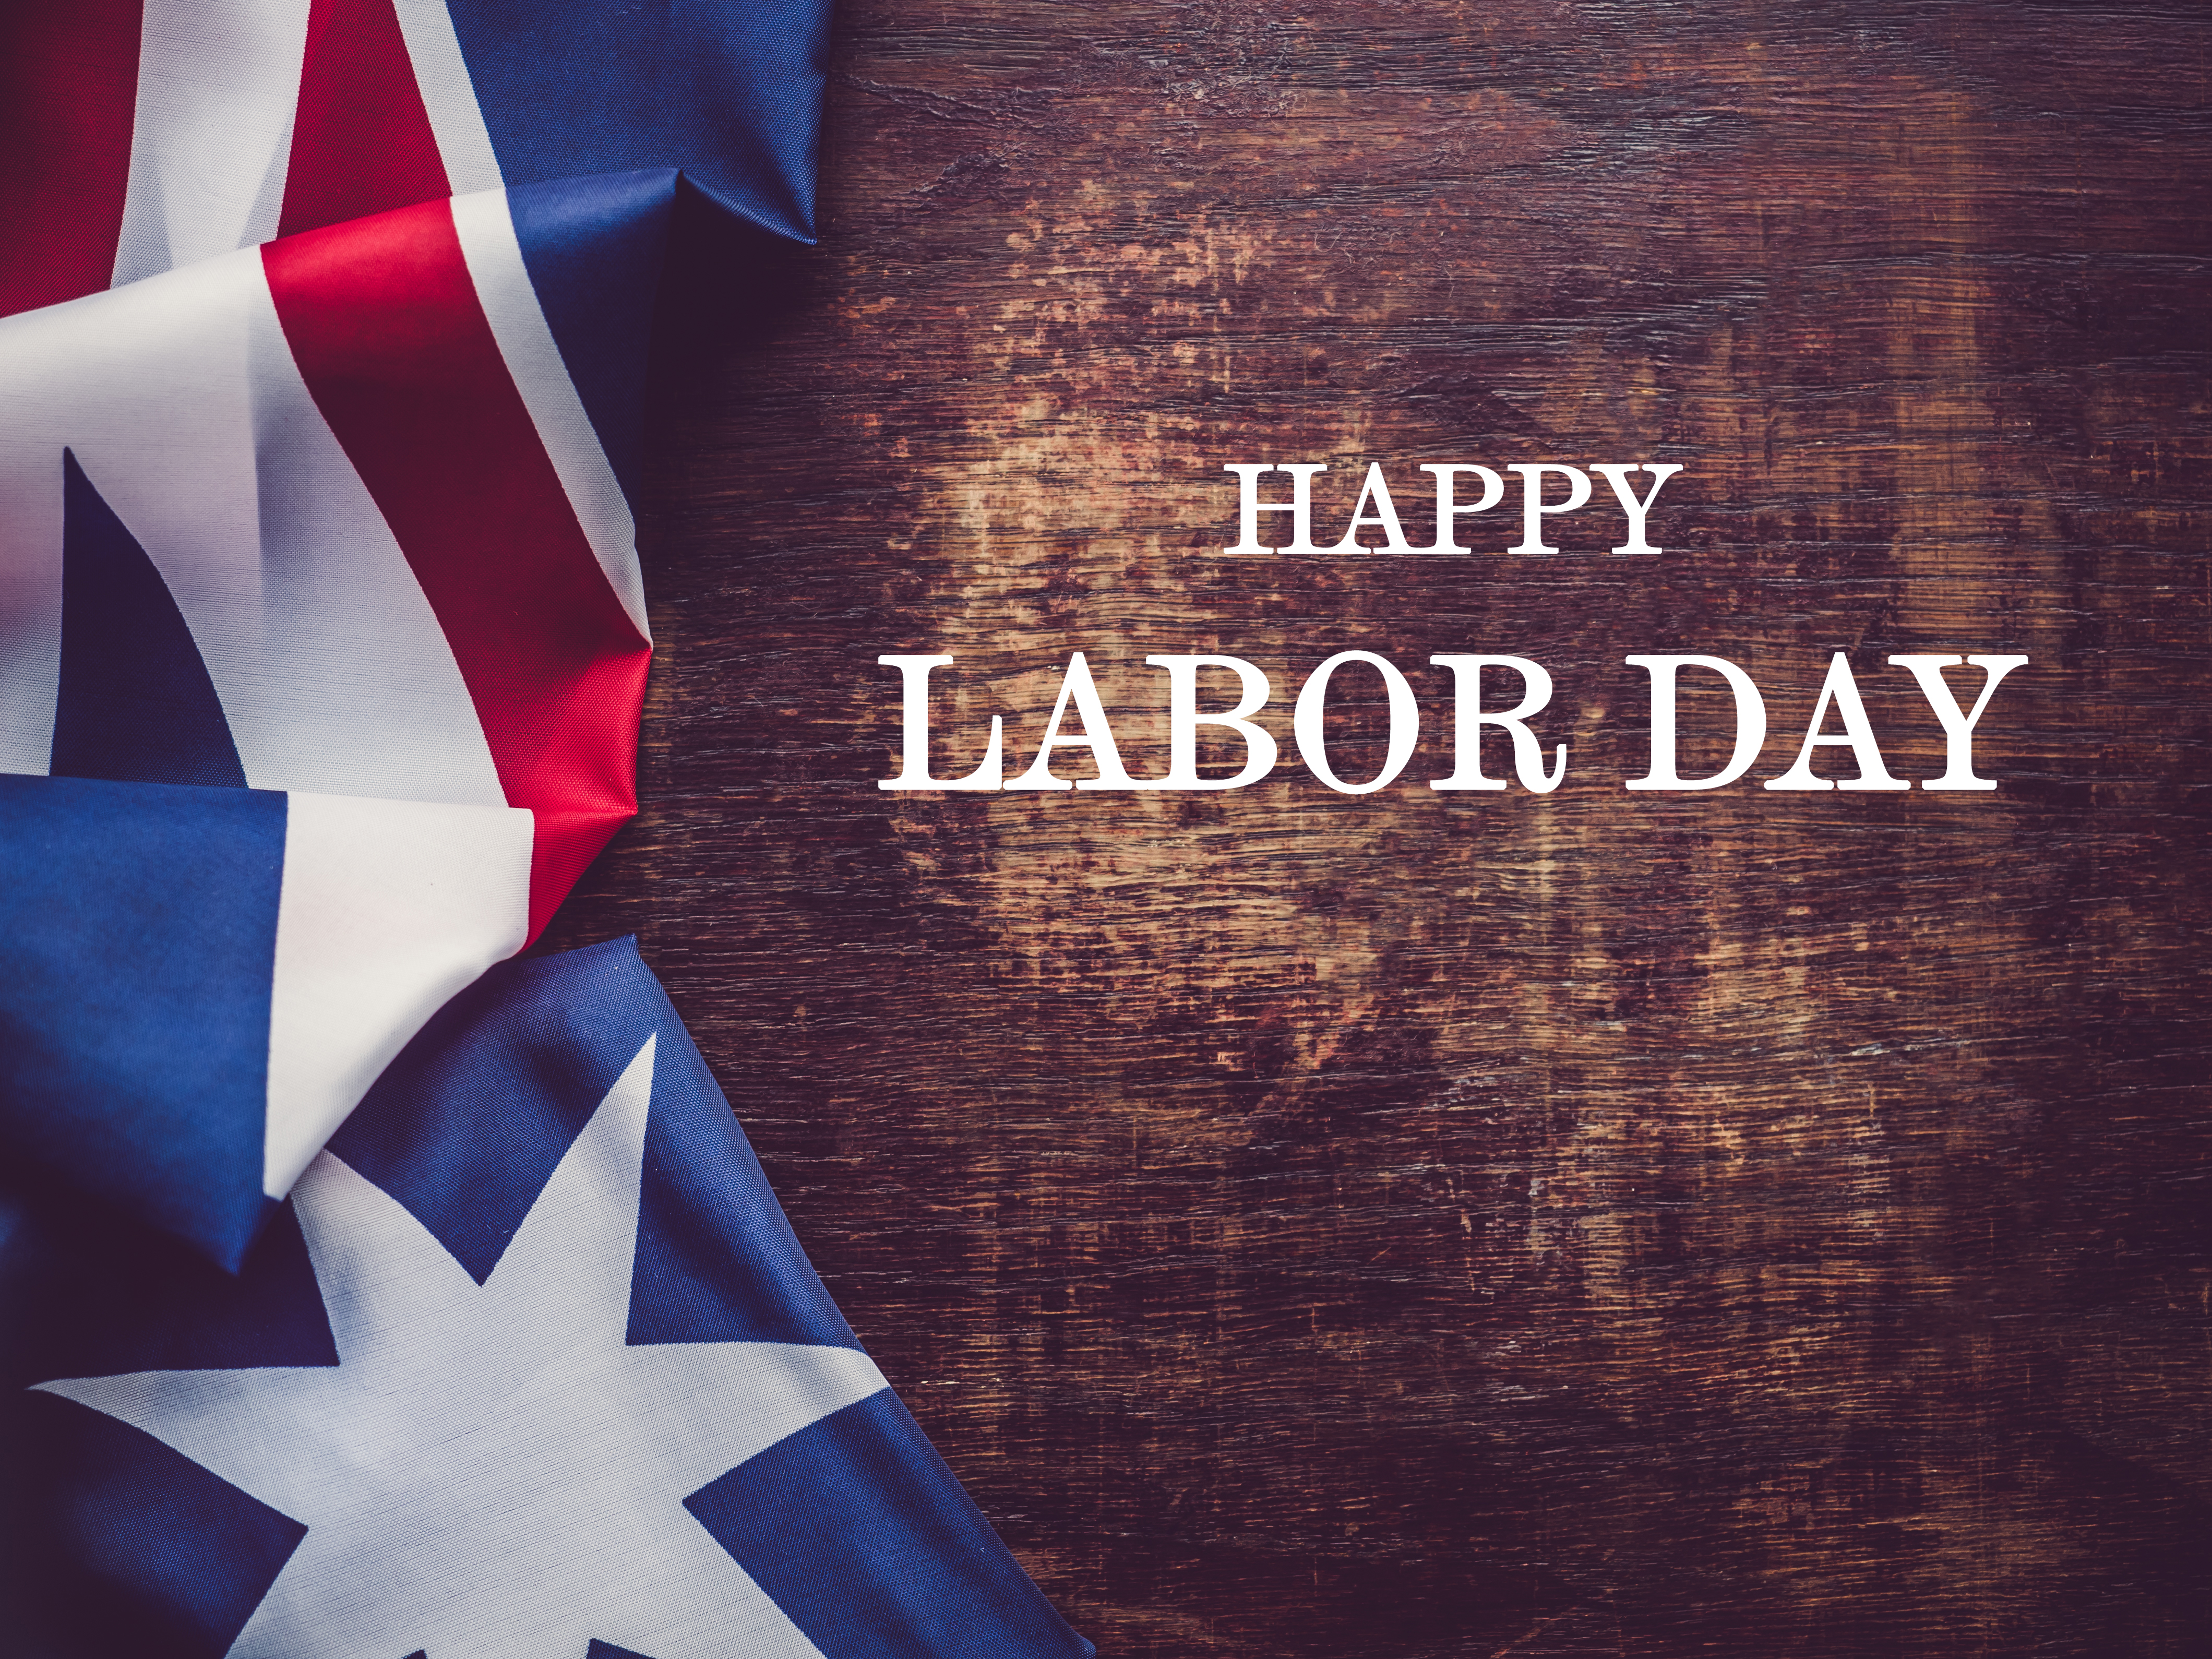 happy-labor-day-beautiful-greeting-card-close-up-view-from-national-holiday-concep.jpg